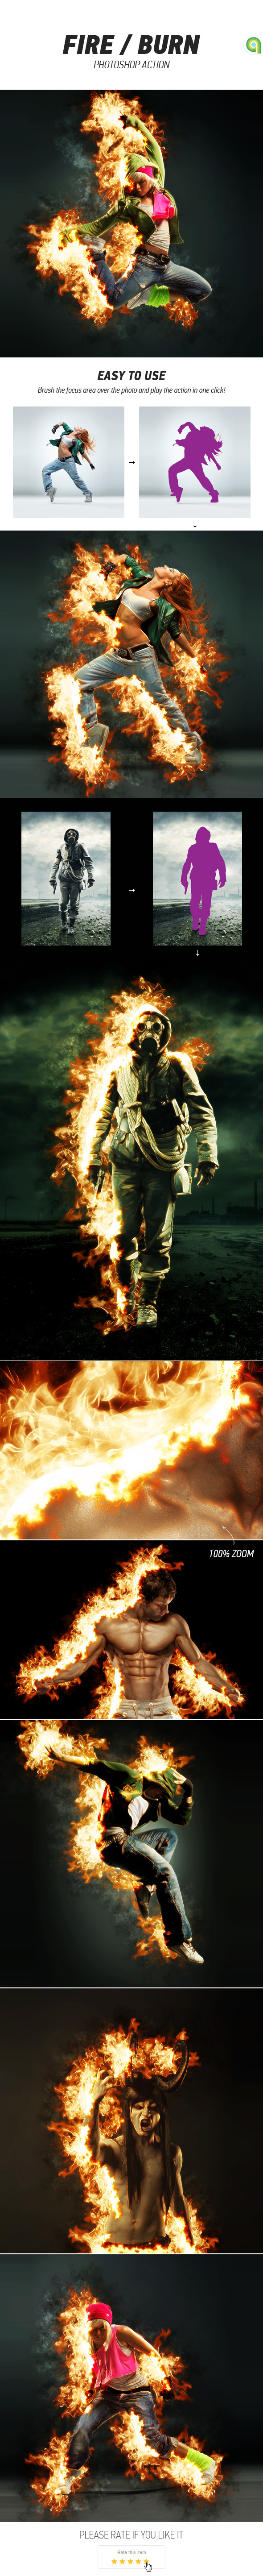 GraphicRiver Fire Burn Photoshop Action 11779279